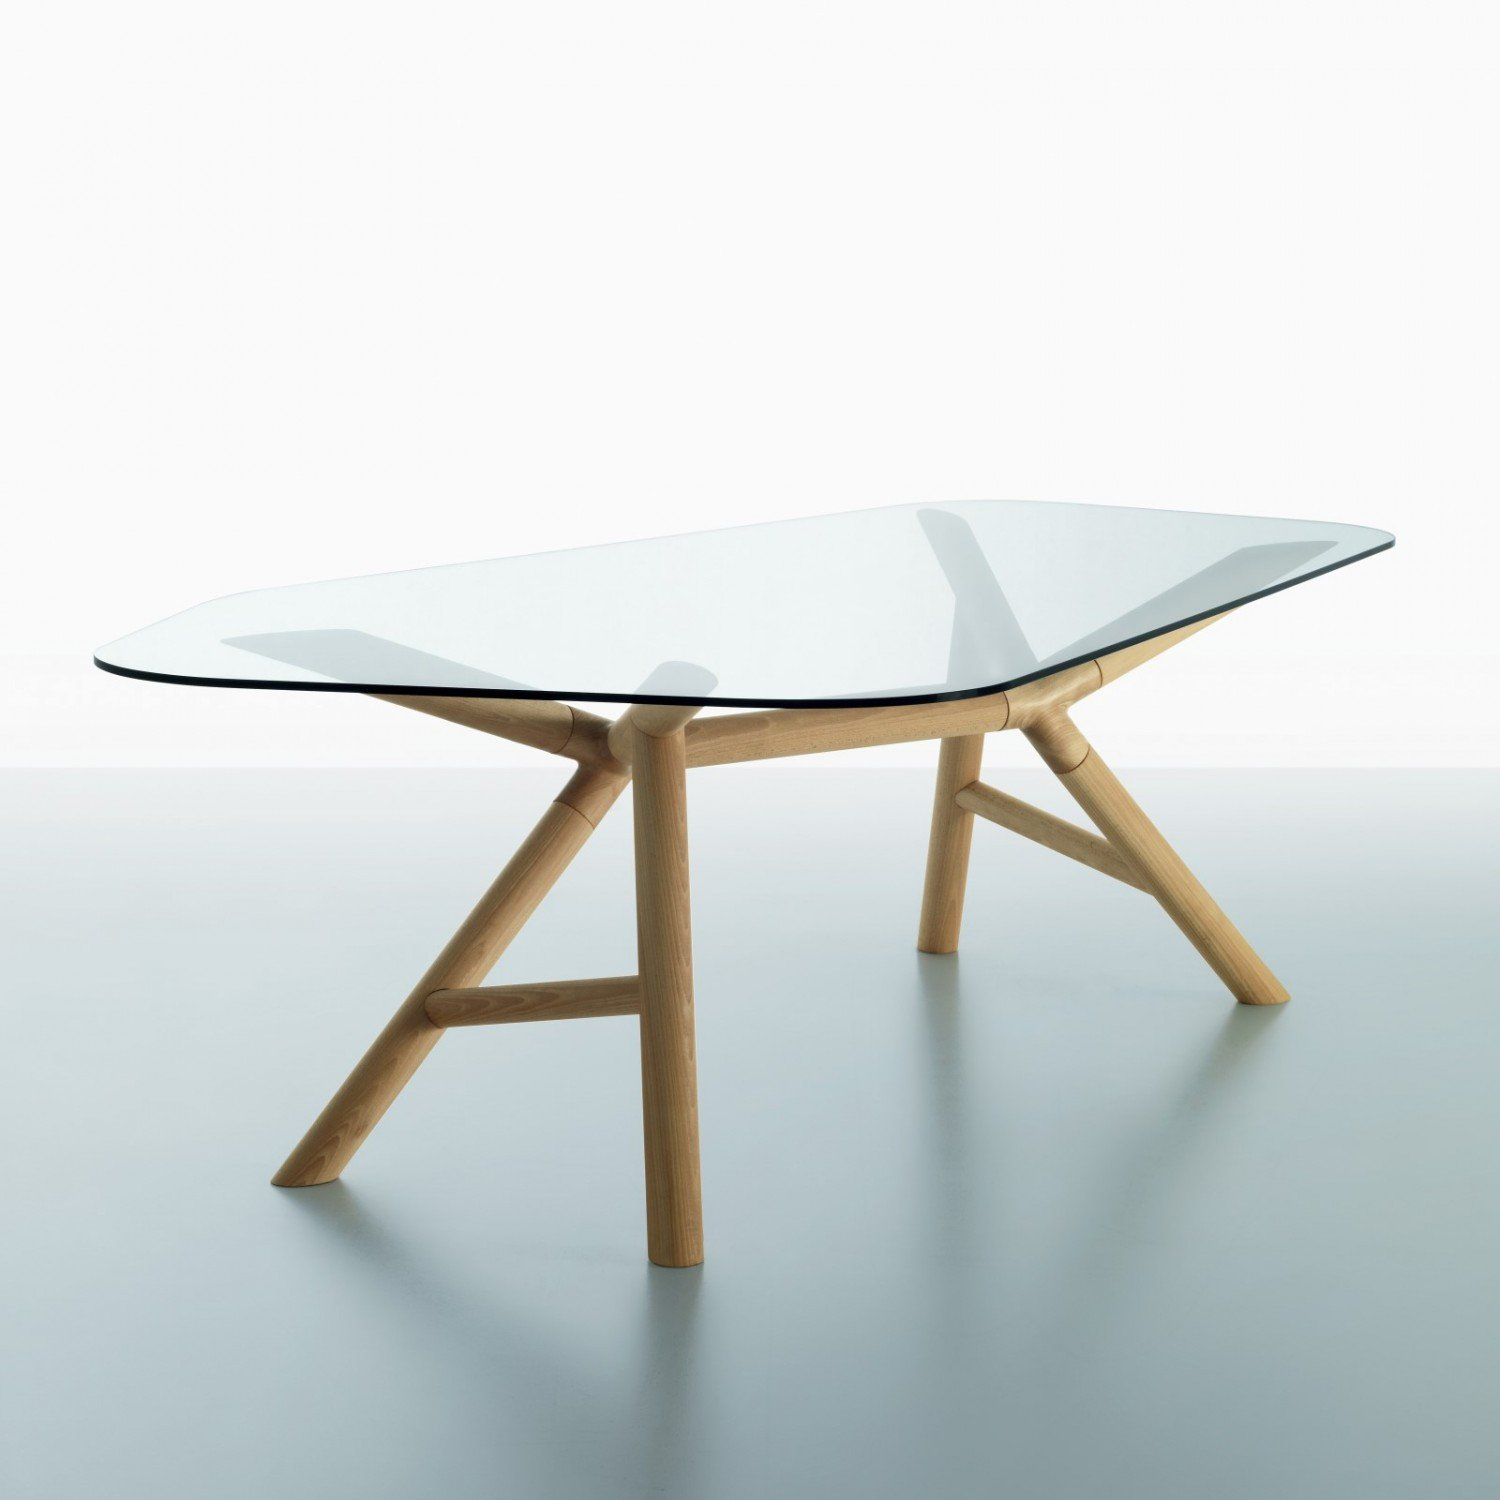 Otto wood and glass dining table klarity glass furniture for Dining table designs in wood and glass